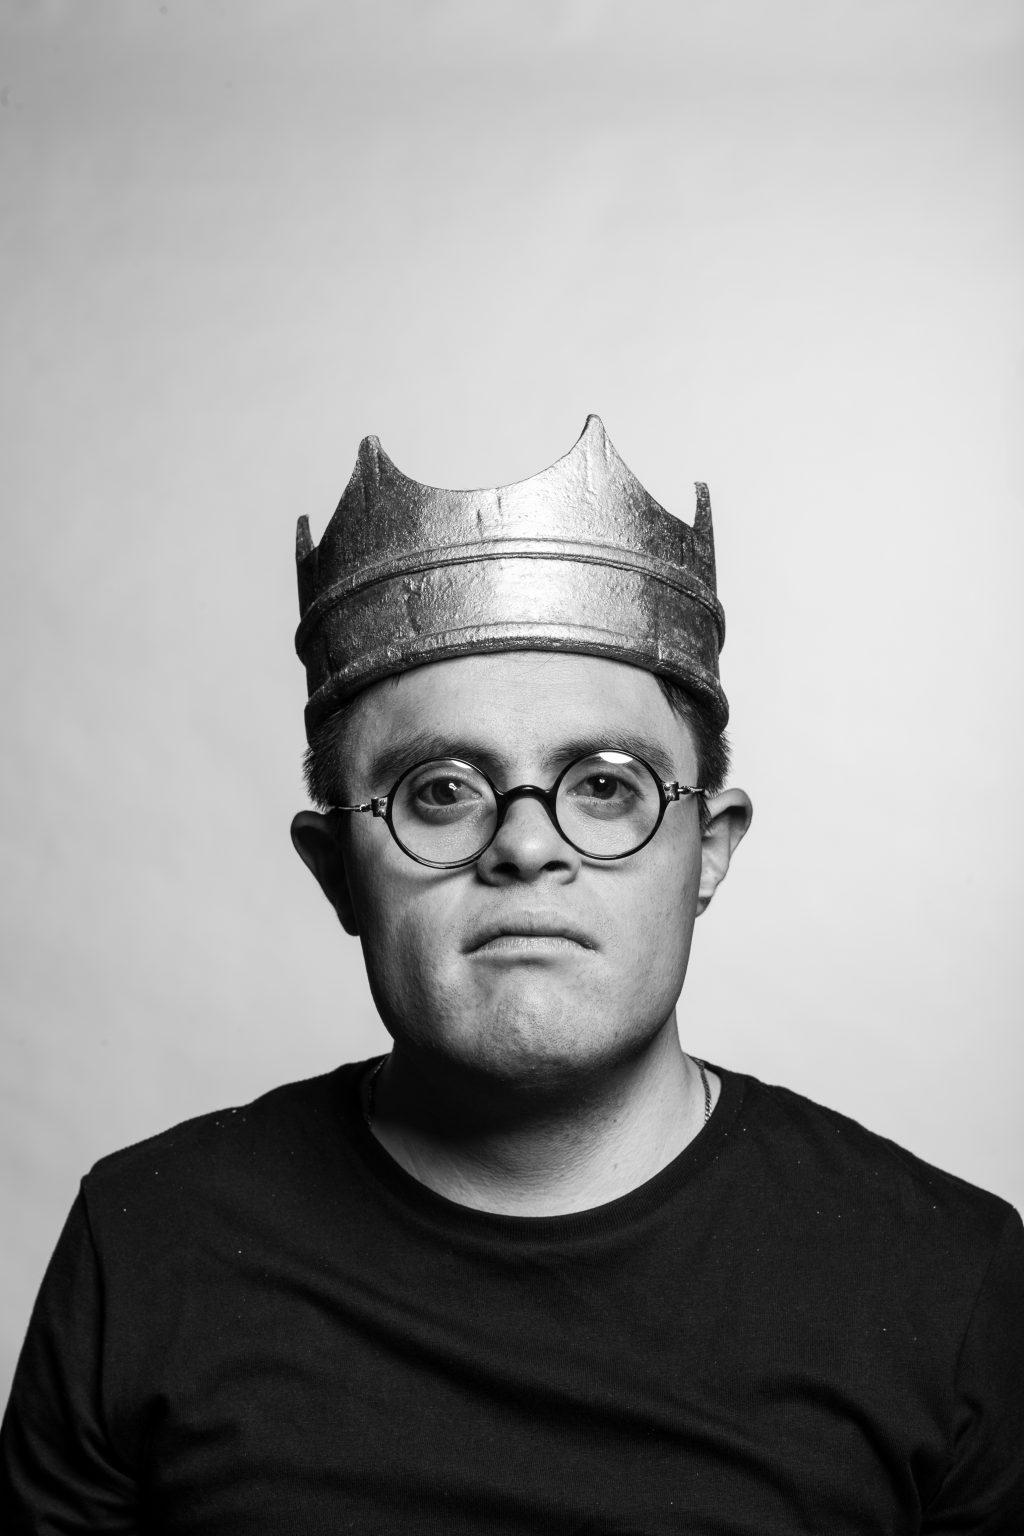 A black and white portrait of an actor in Teatro La Plaza's Hamlet. He is wearing round glasses with a crown on his head and is looking straight at the camera with a serious and deep look on his face.